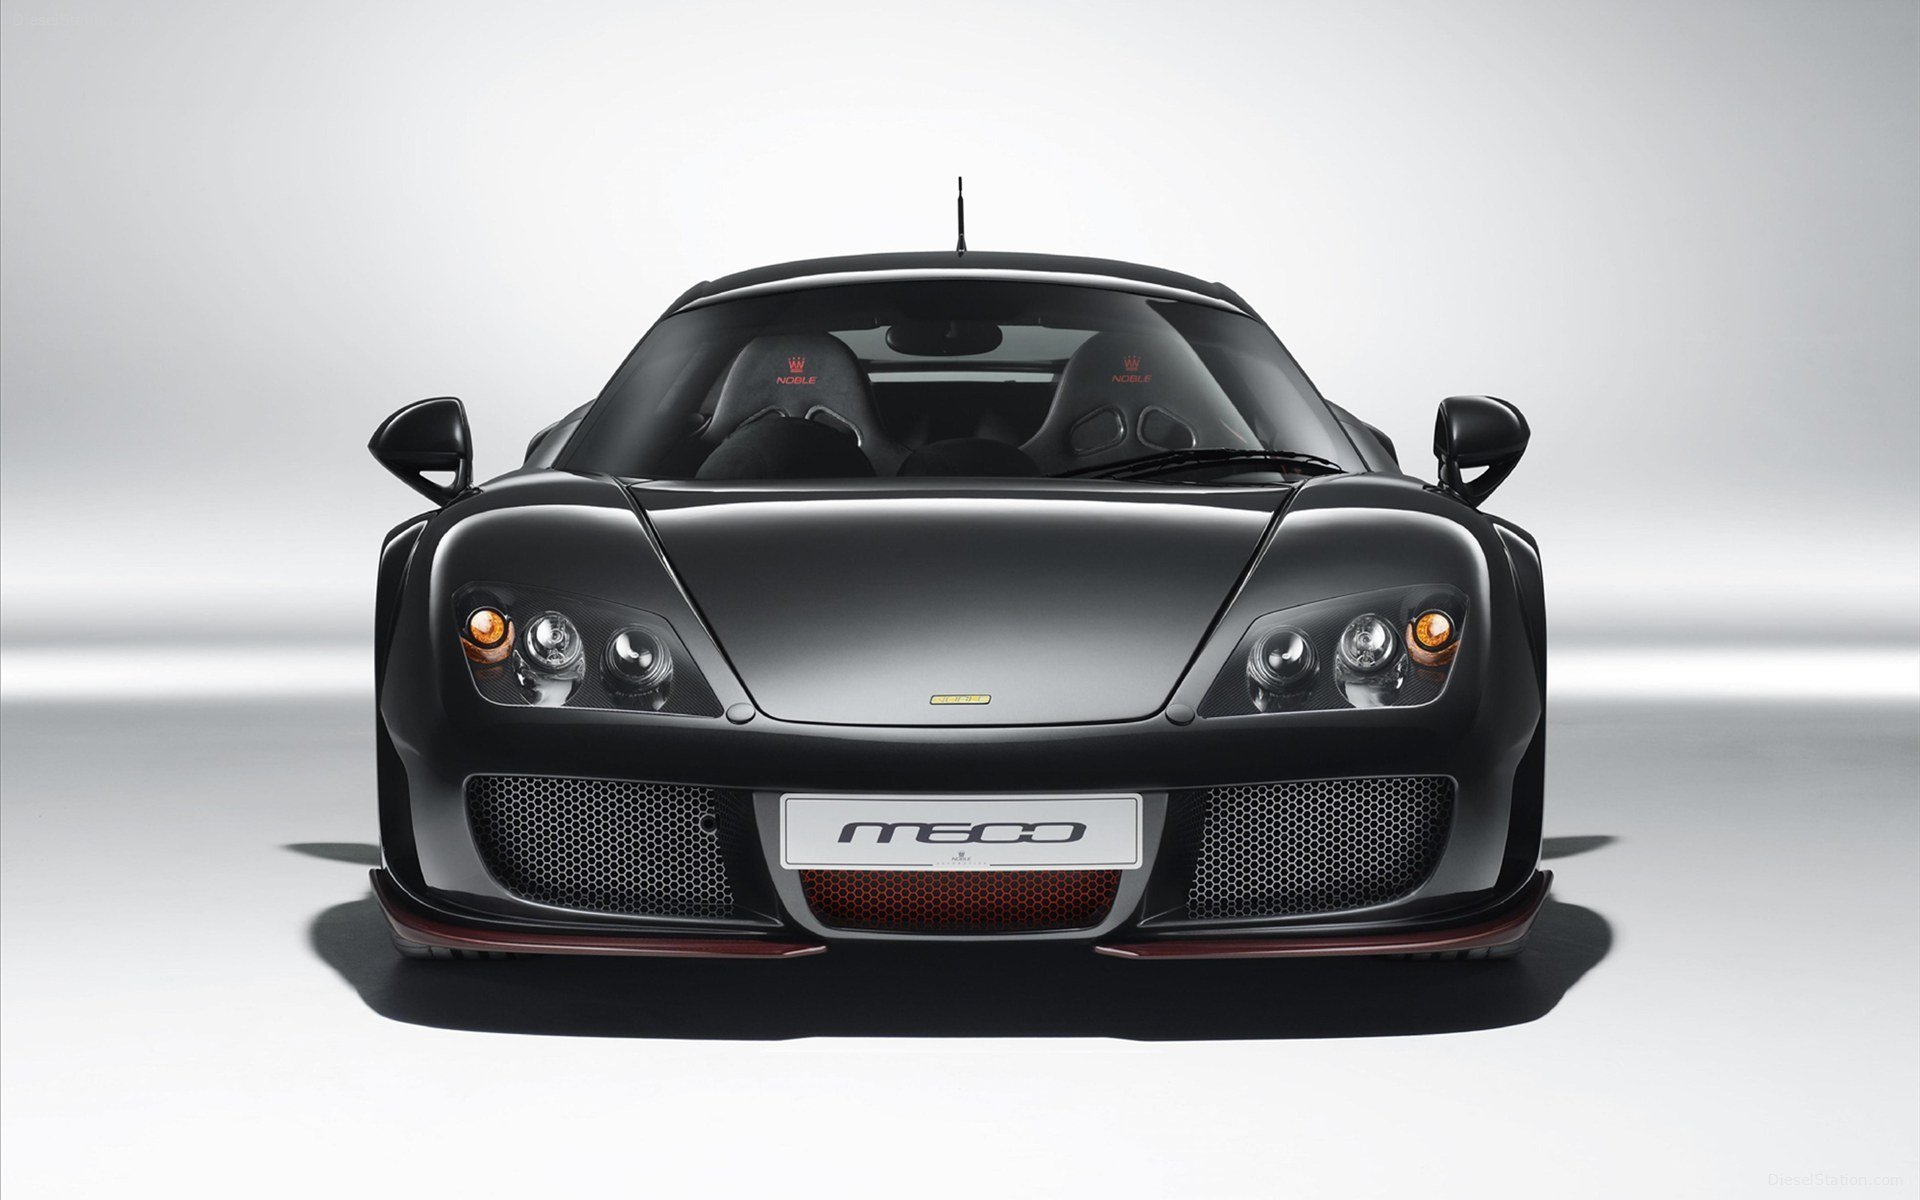 Latest Noble M600 2012 Wallpaper Hd Car Wallpapers Id 2844 Free Download